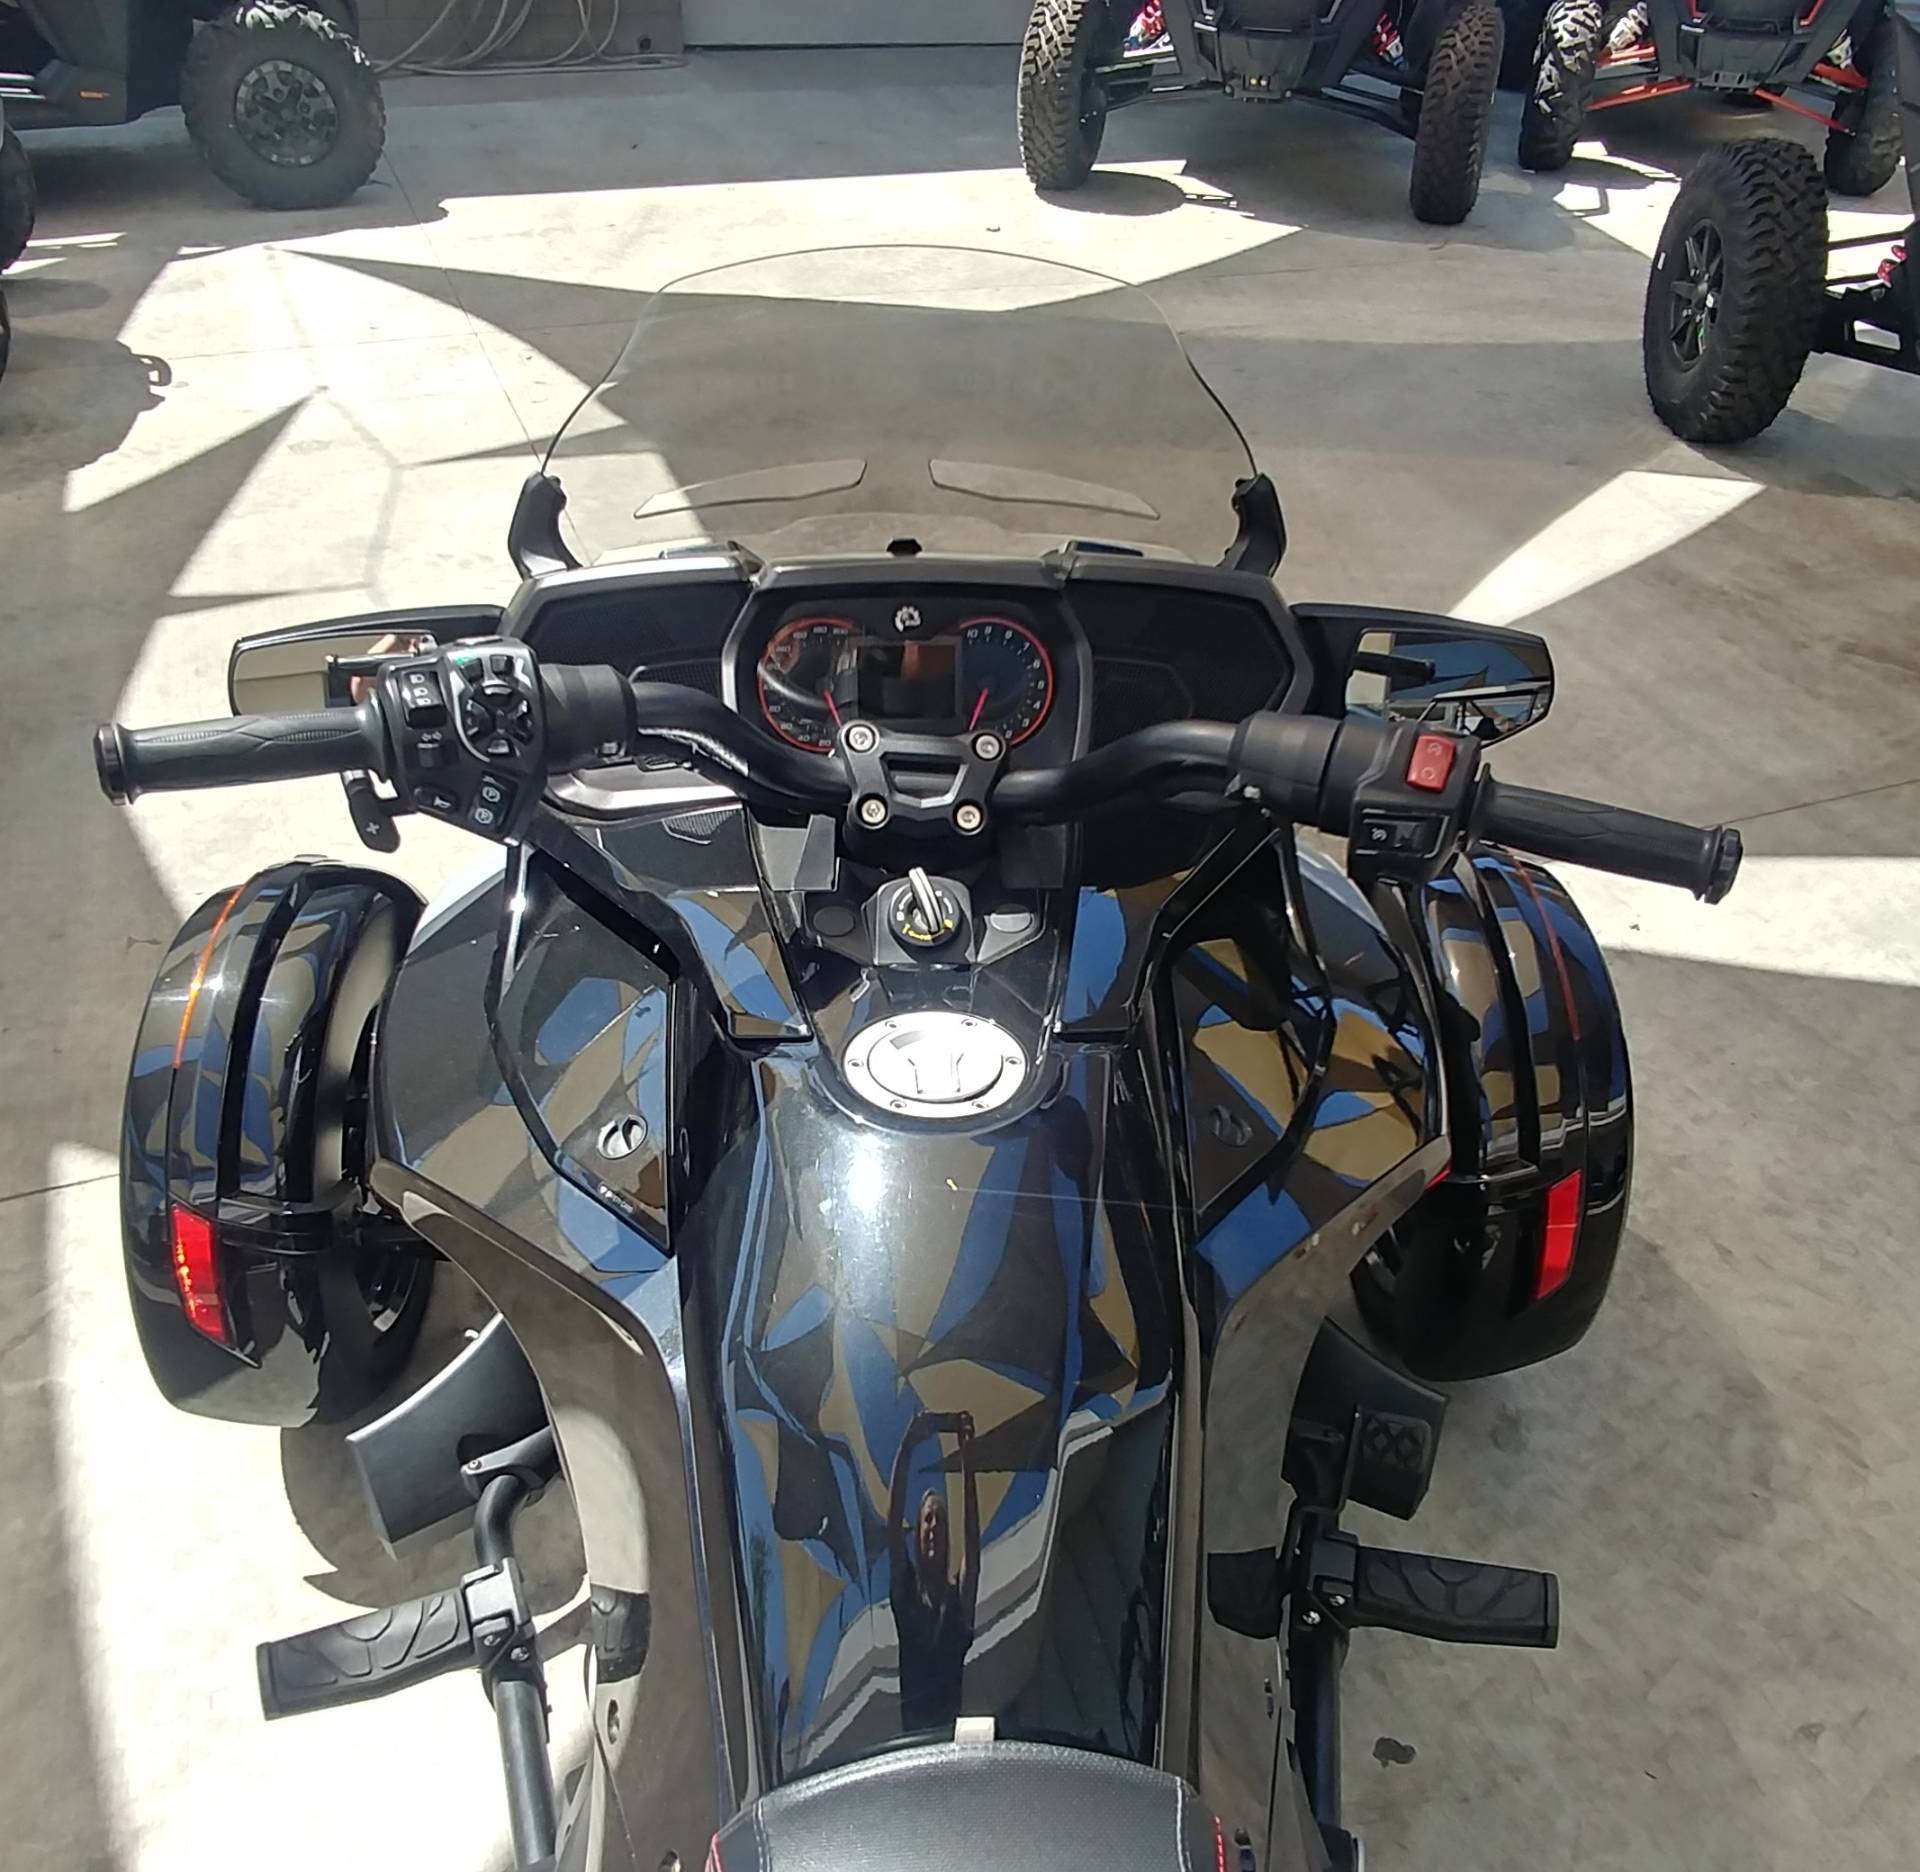 2016 Can-Am Spyder F3-T SE6 w/ Audio System in Ontario, California - Photo 10